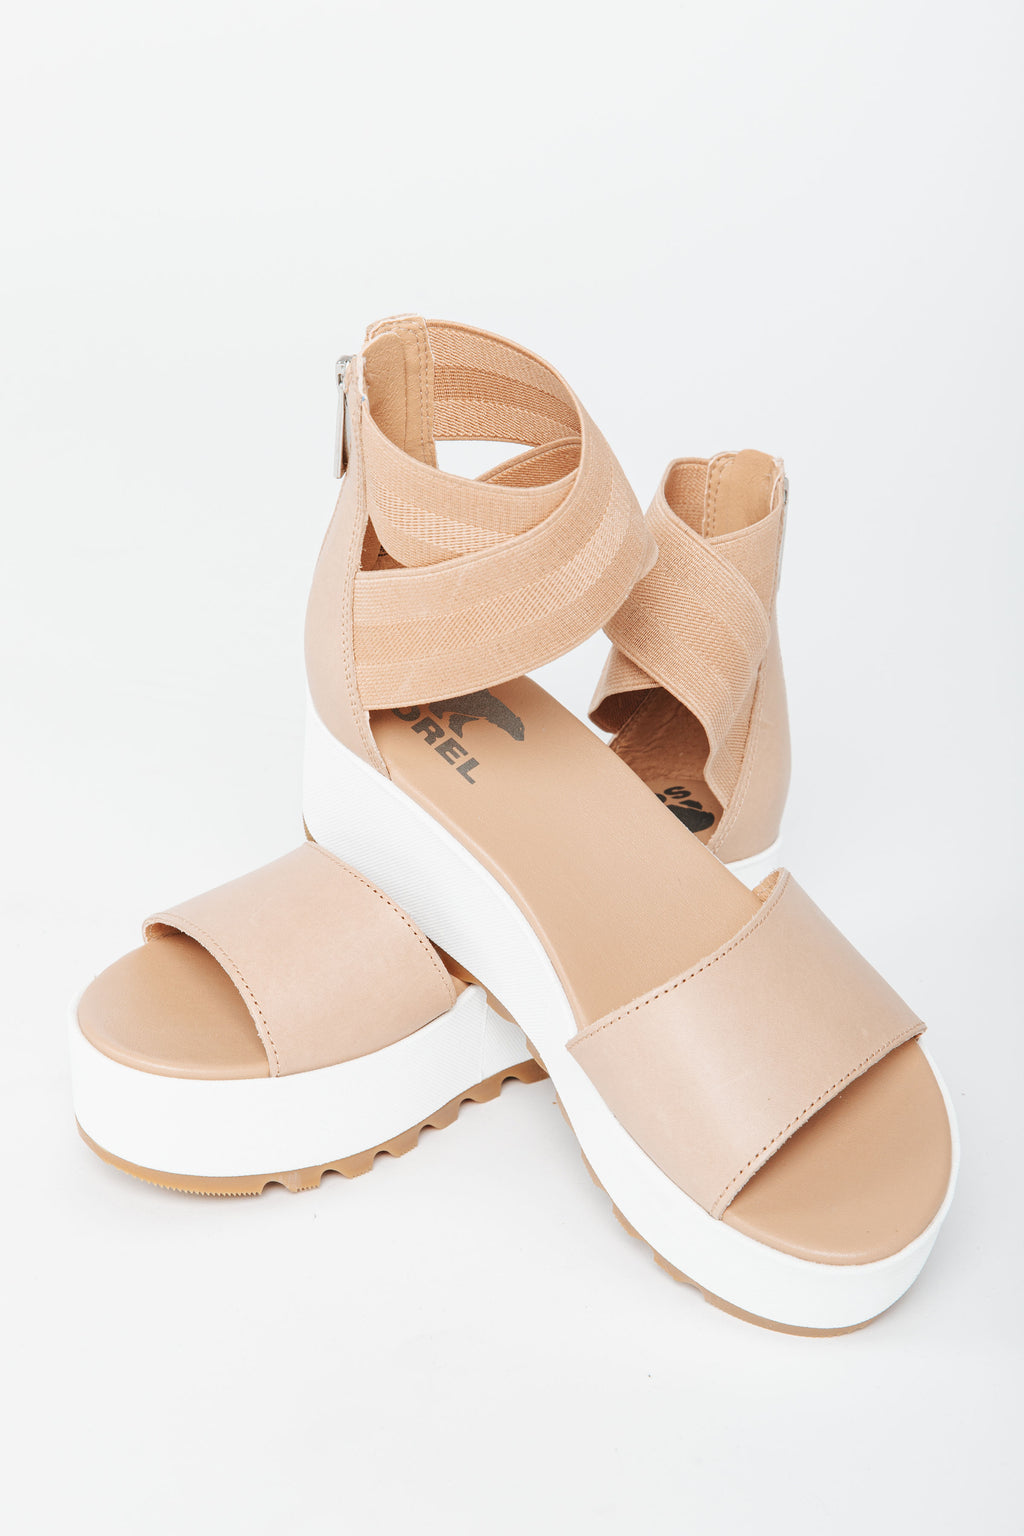 SOREL: Cameron Flatform Ankle Strap Wedge Sandal in Honest Beige, studio shoot; side view